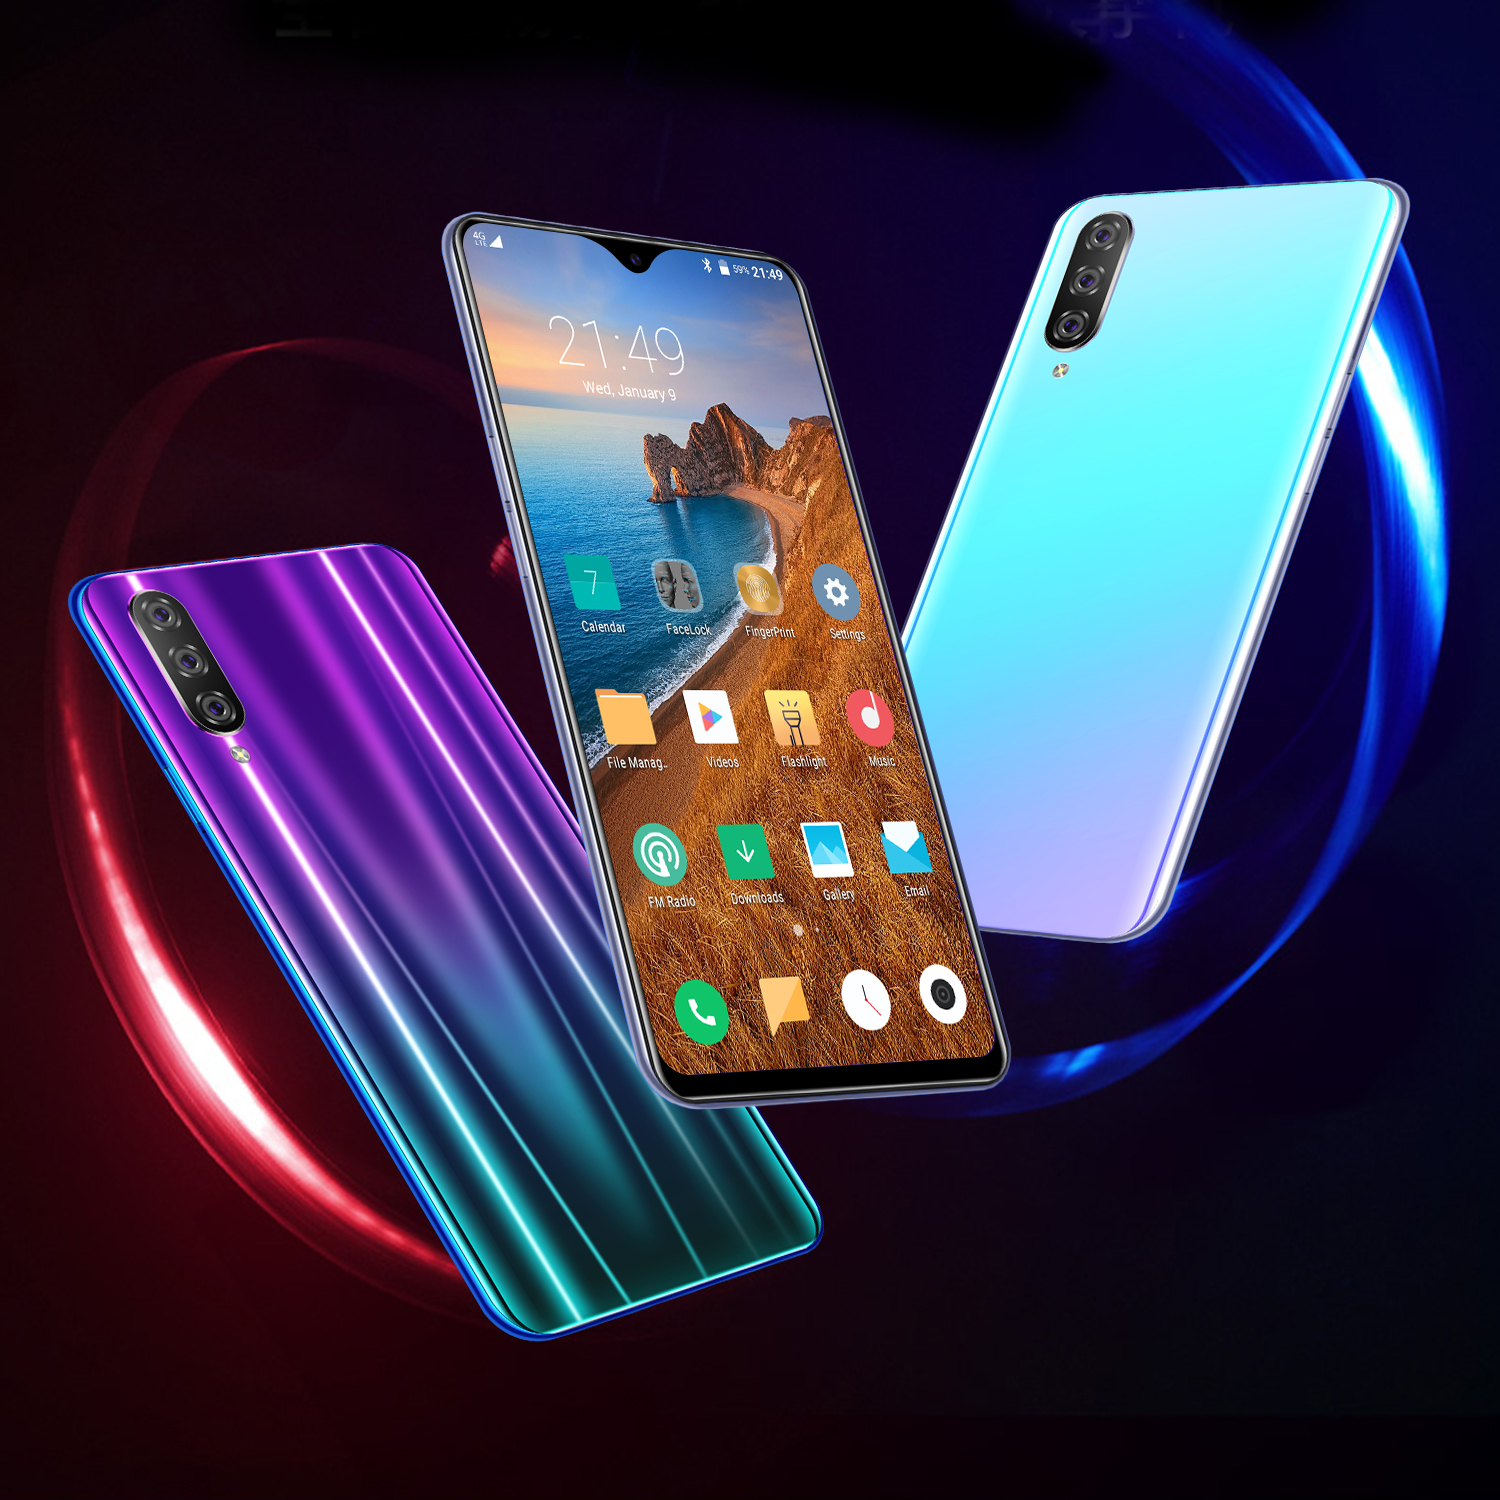 Image 4 - CHAOAI M9 Smartphone 6GB 128GB Global Version Smart Cell Phone 6.3 inch Water Drop Screen Dual Sim 3G Mobile-in Cellphones from Cellphones & Telecommunications